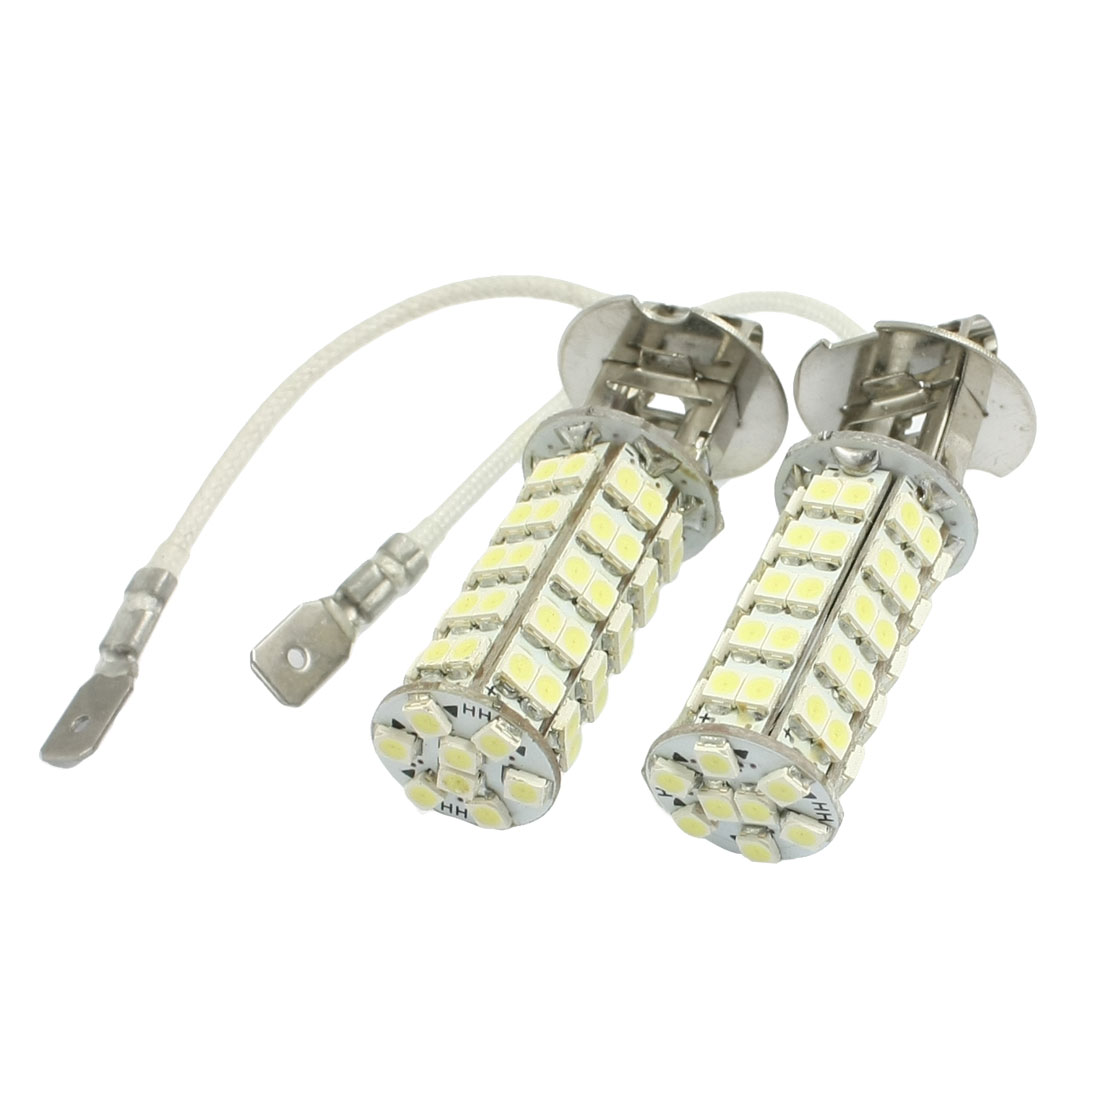 Unique Bargains Unique Bargains 2 Pcs White H3 3528 1210 SMD 68 LED Fog Driving Headlight Bulb Lamp - image 1 de 1